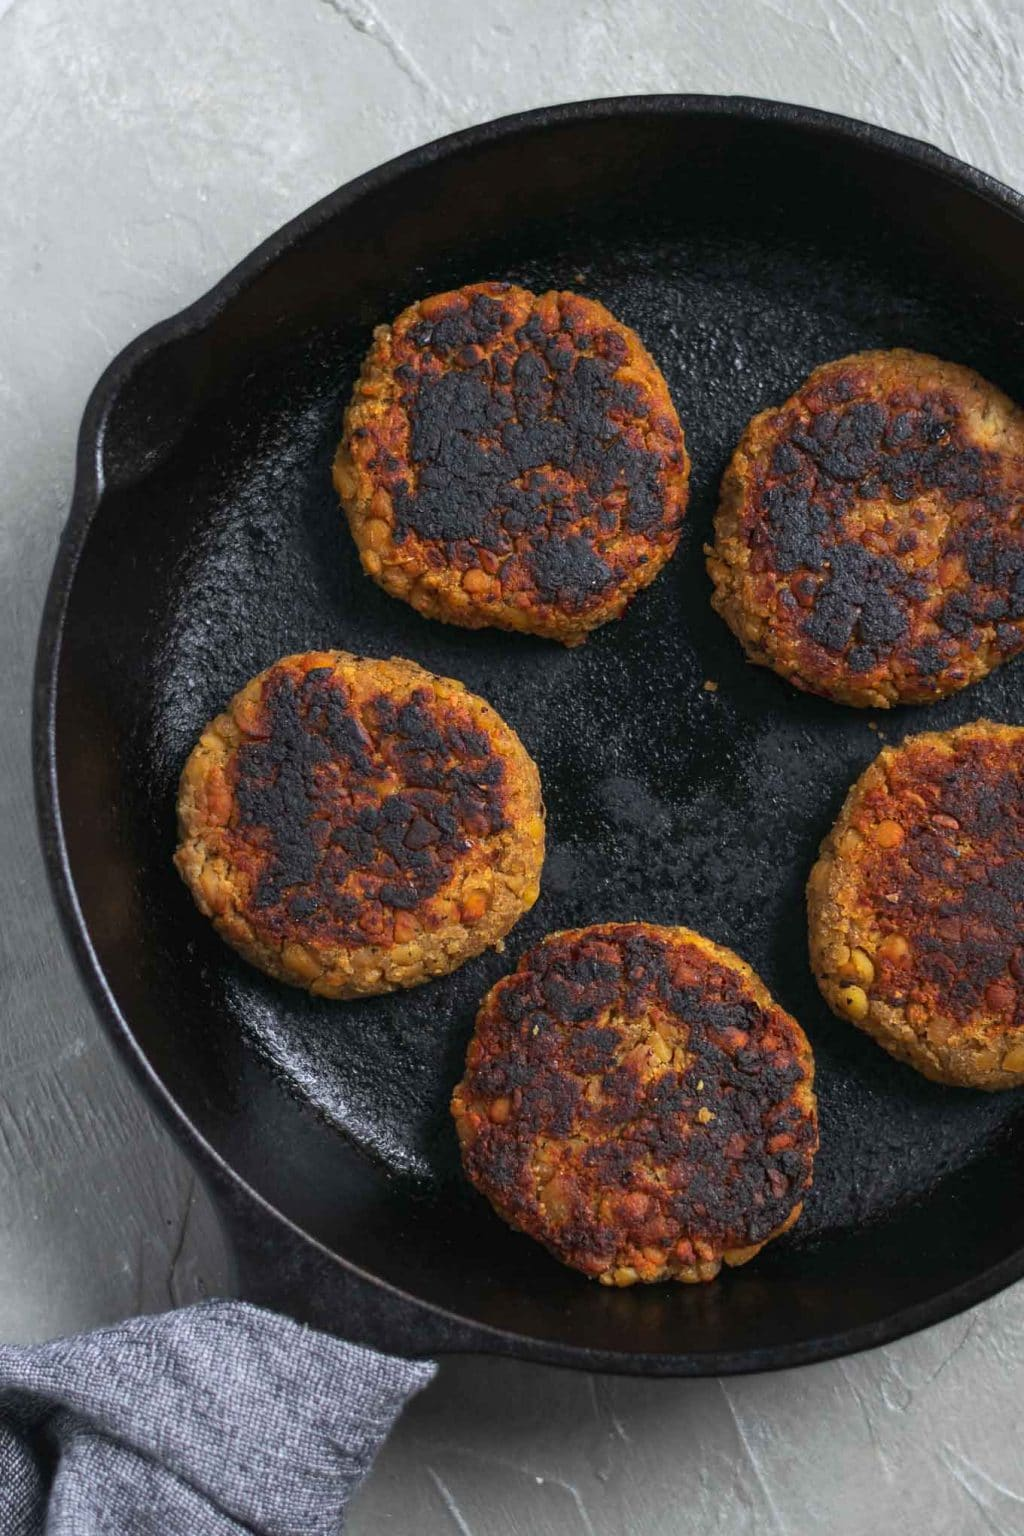 vegan tempeh maple breakfast sausage patties on a cast iron skillet